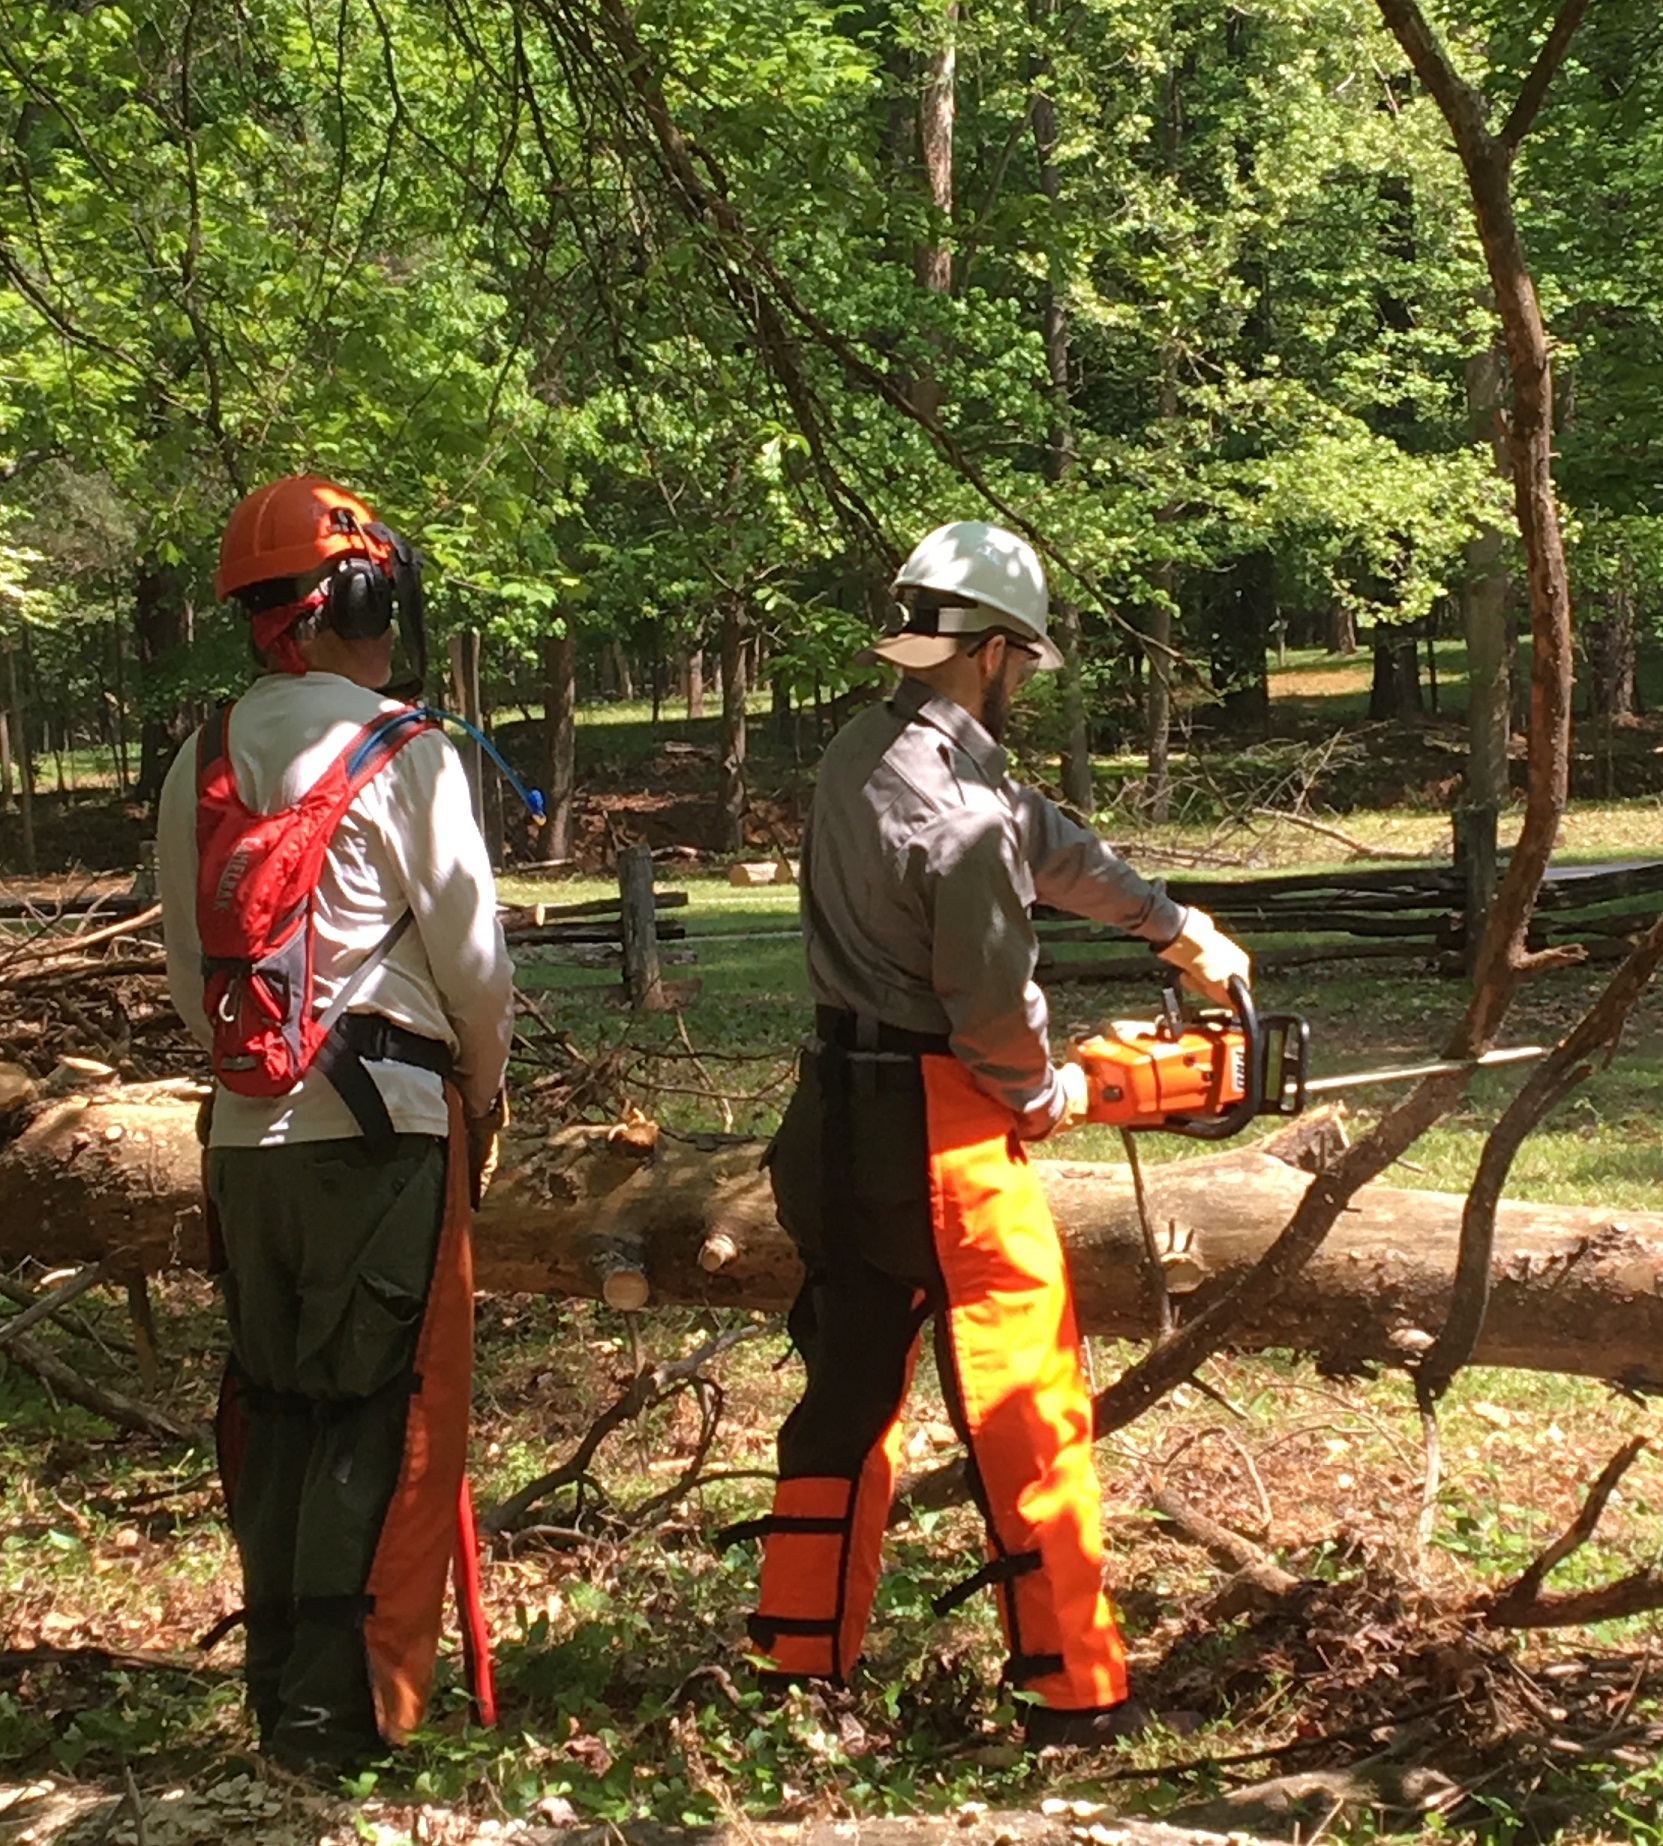 A sawyer uses a chainsaw to remove limbs while the instructor observes from behind.